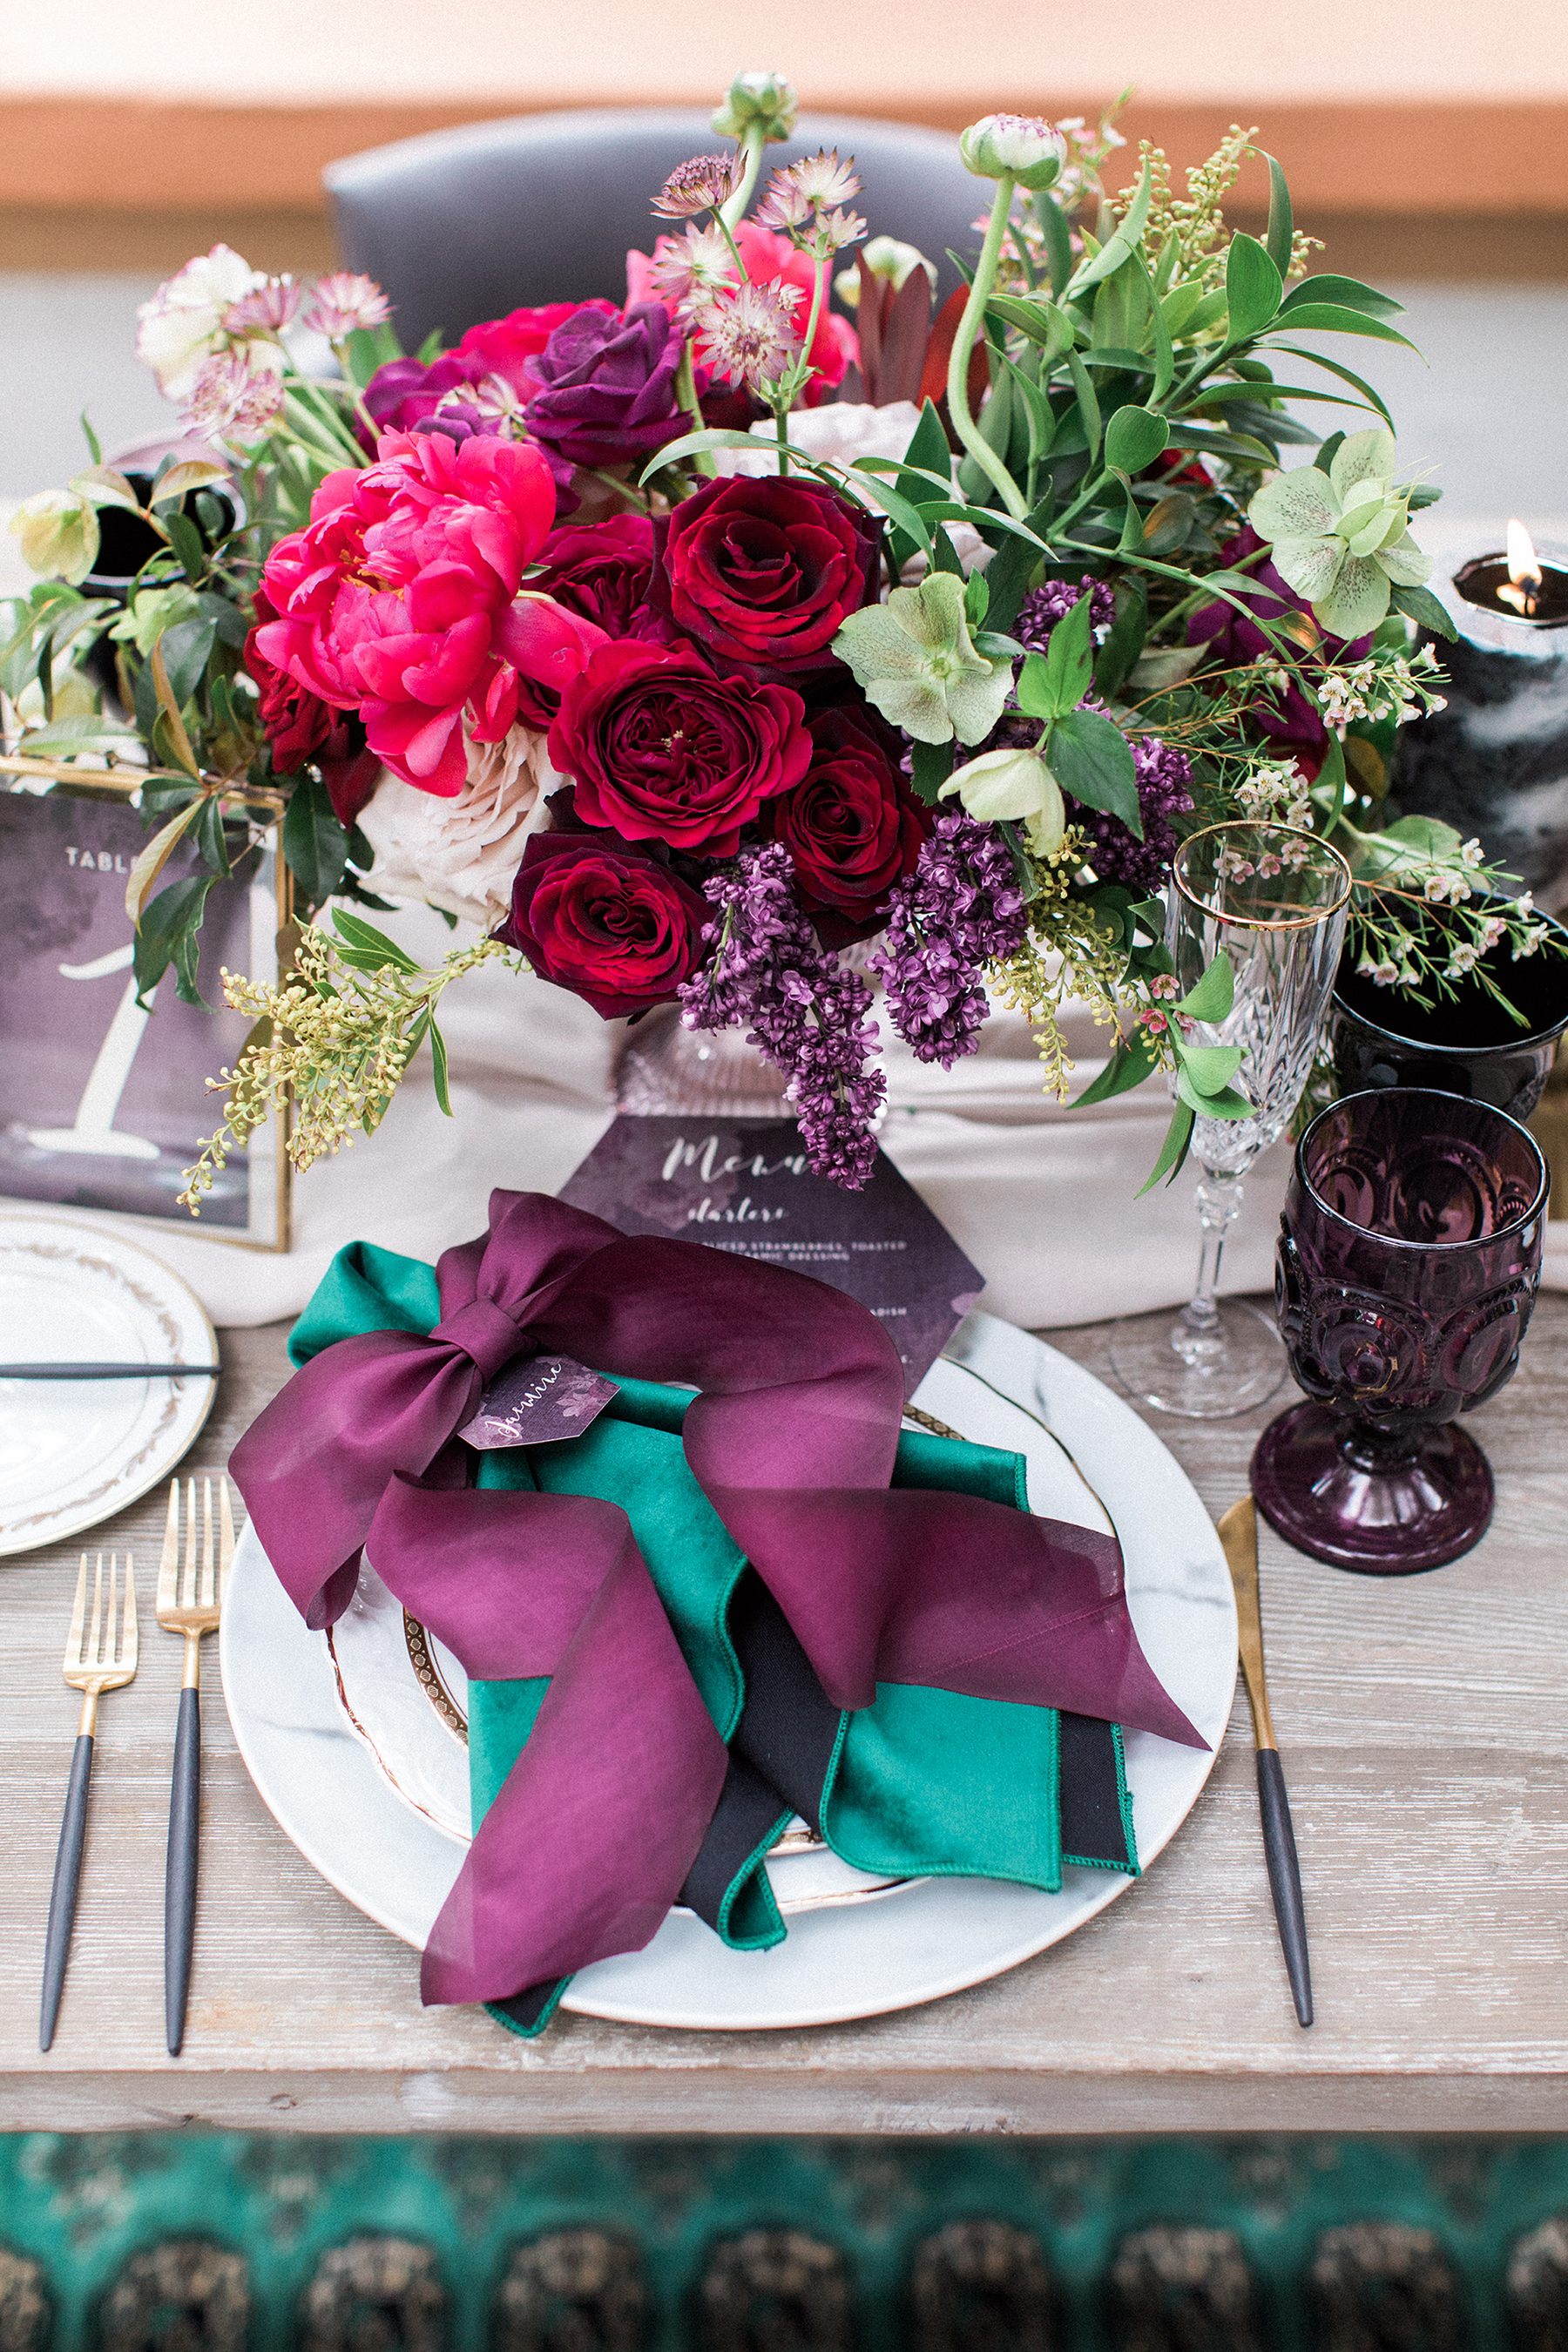 jewel-toned centerpiece with magenta garden roses